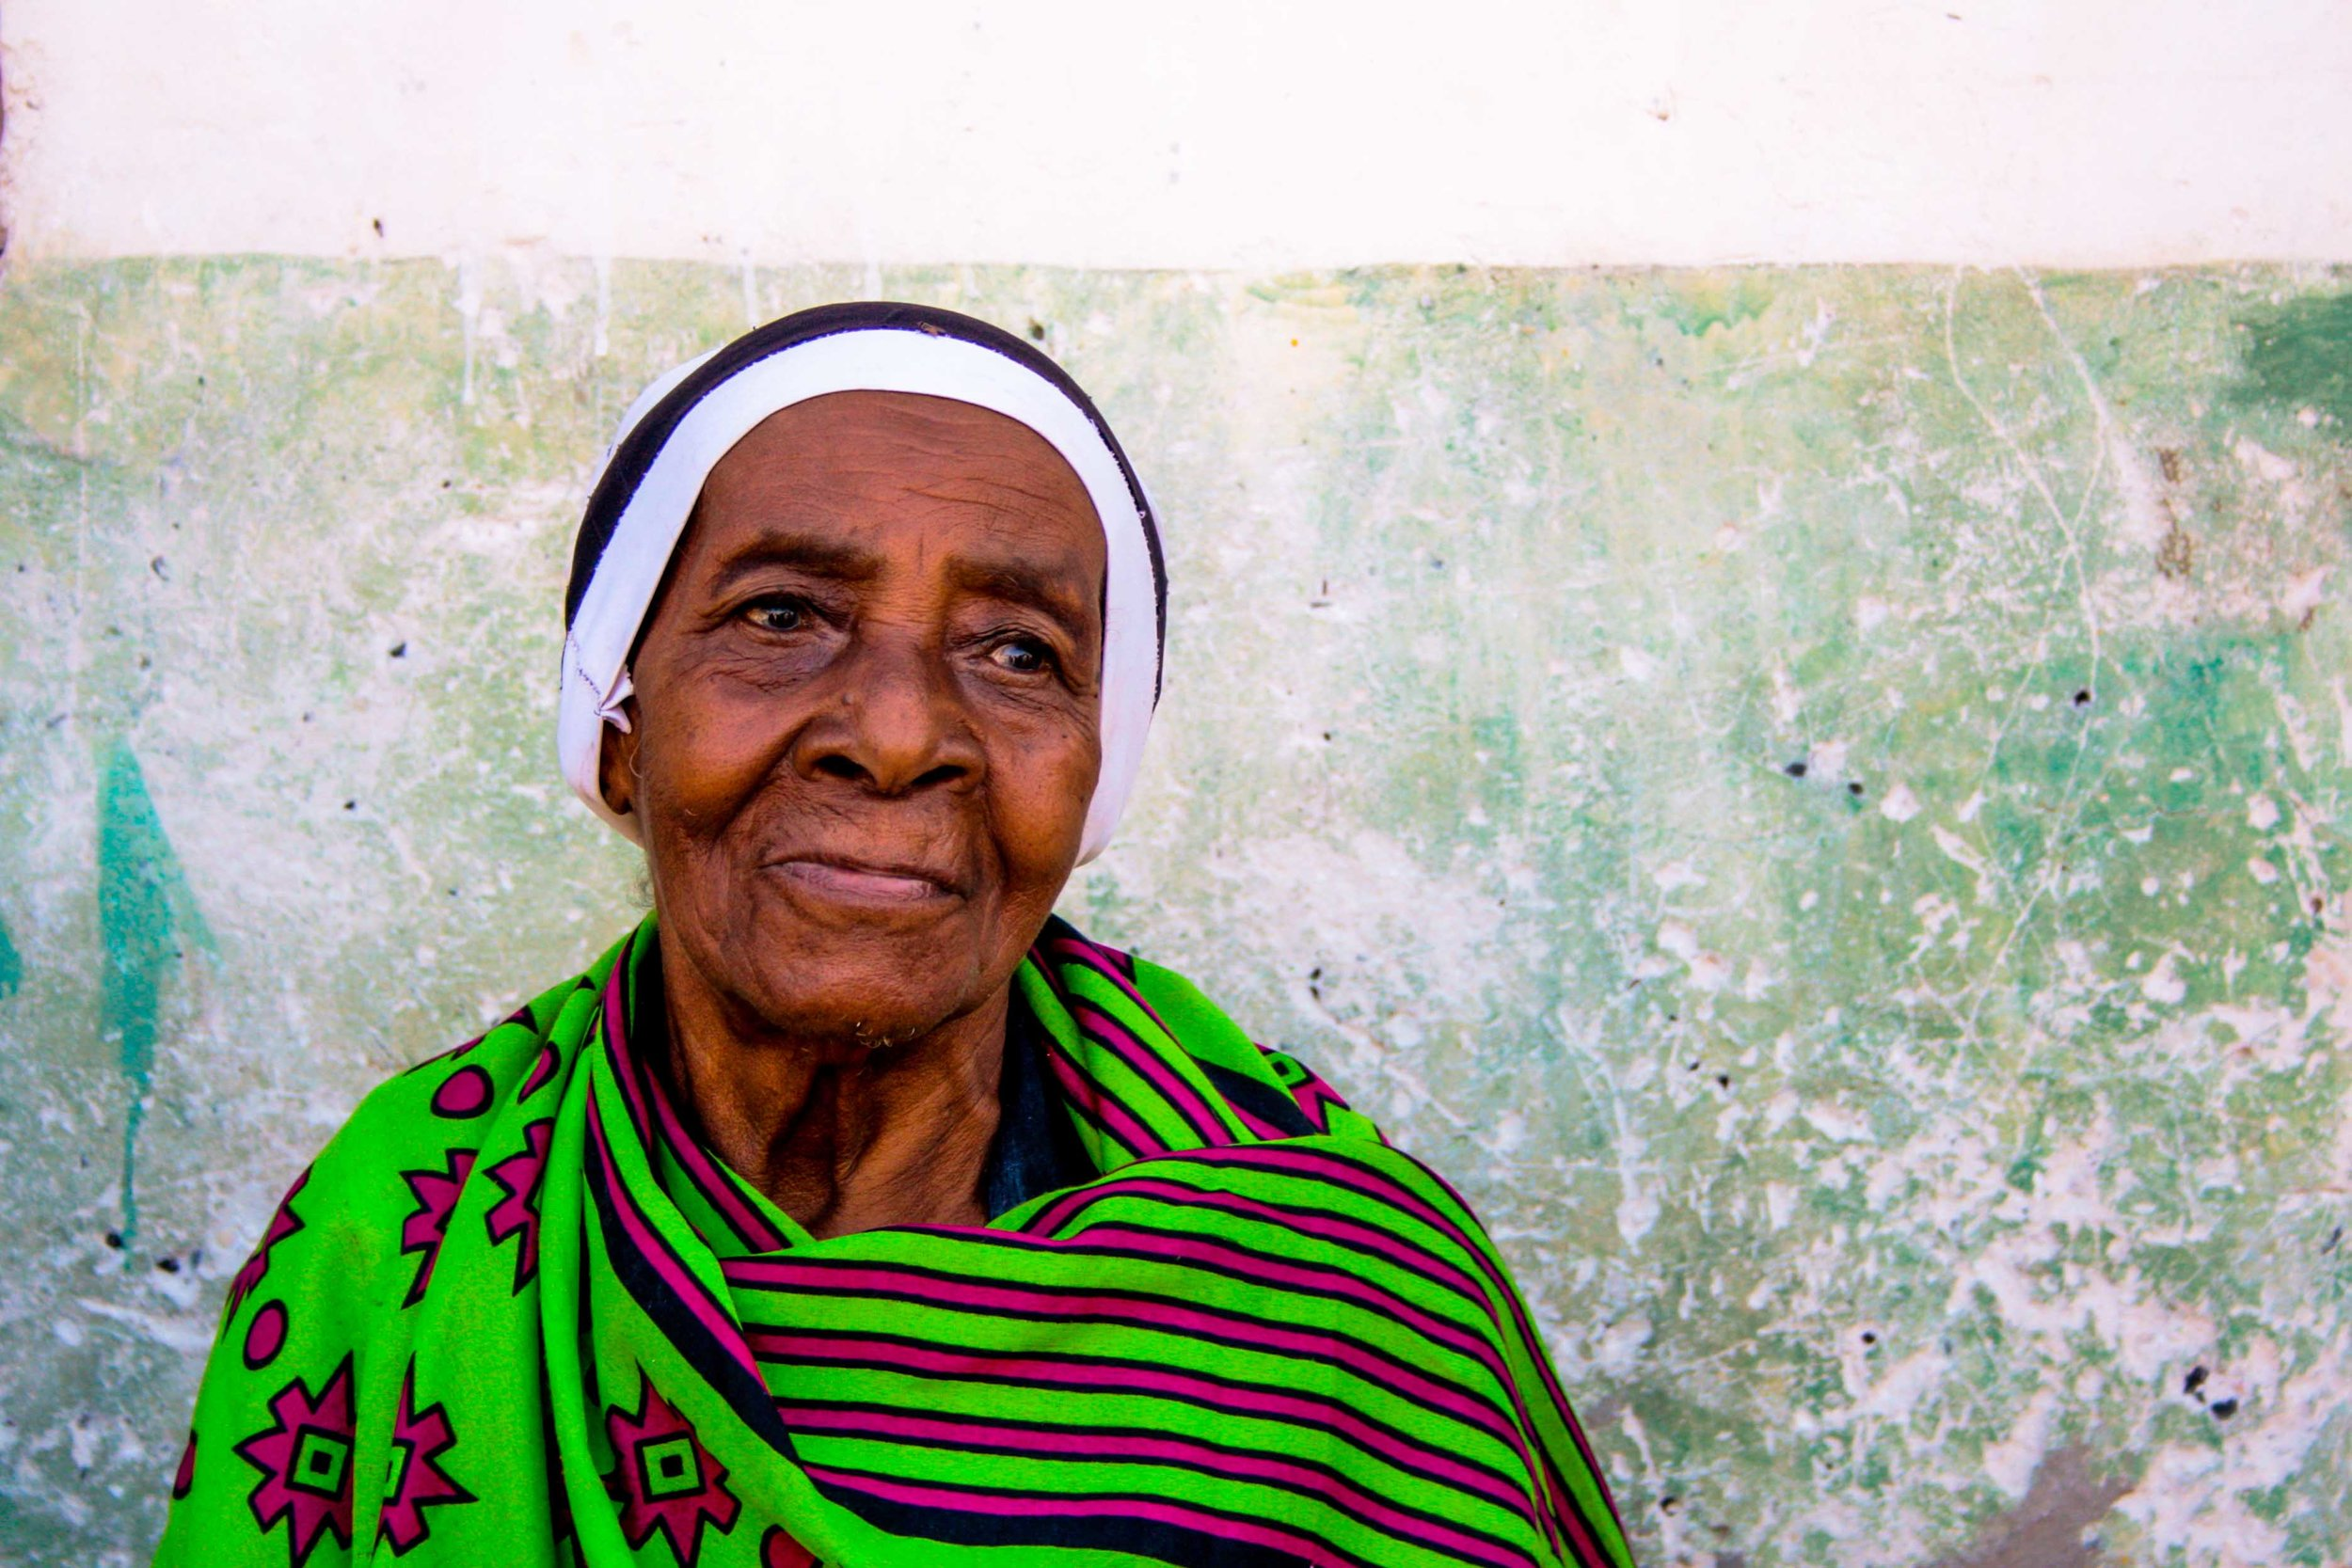 zanzibar 2015   the oldest family member on the wedding of her granddaughter in jambiani. after the celebration in her home village, the newly wed couple moved to stone town where the husband is coming from.